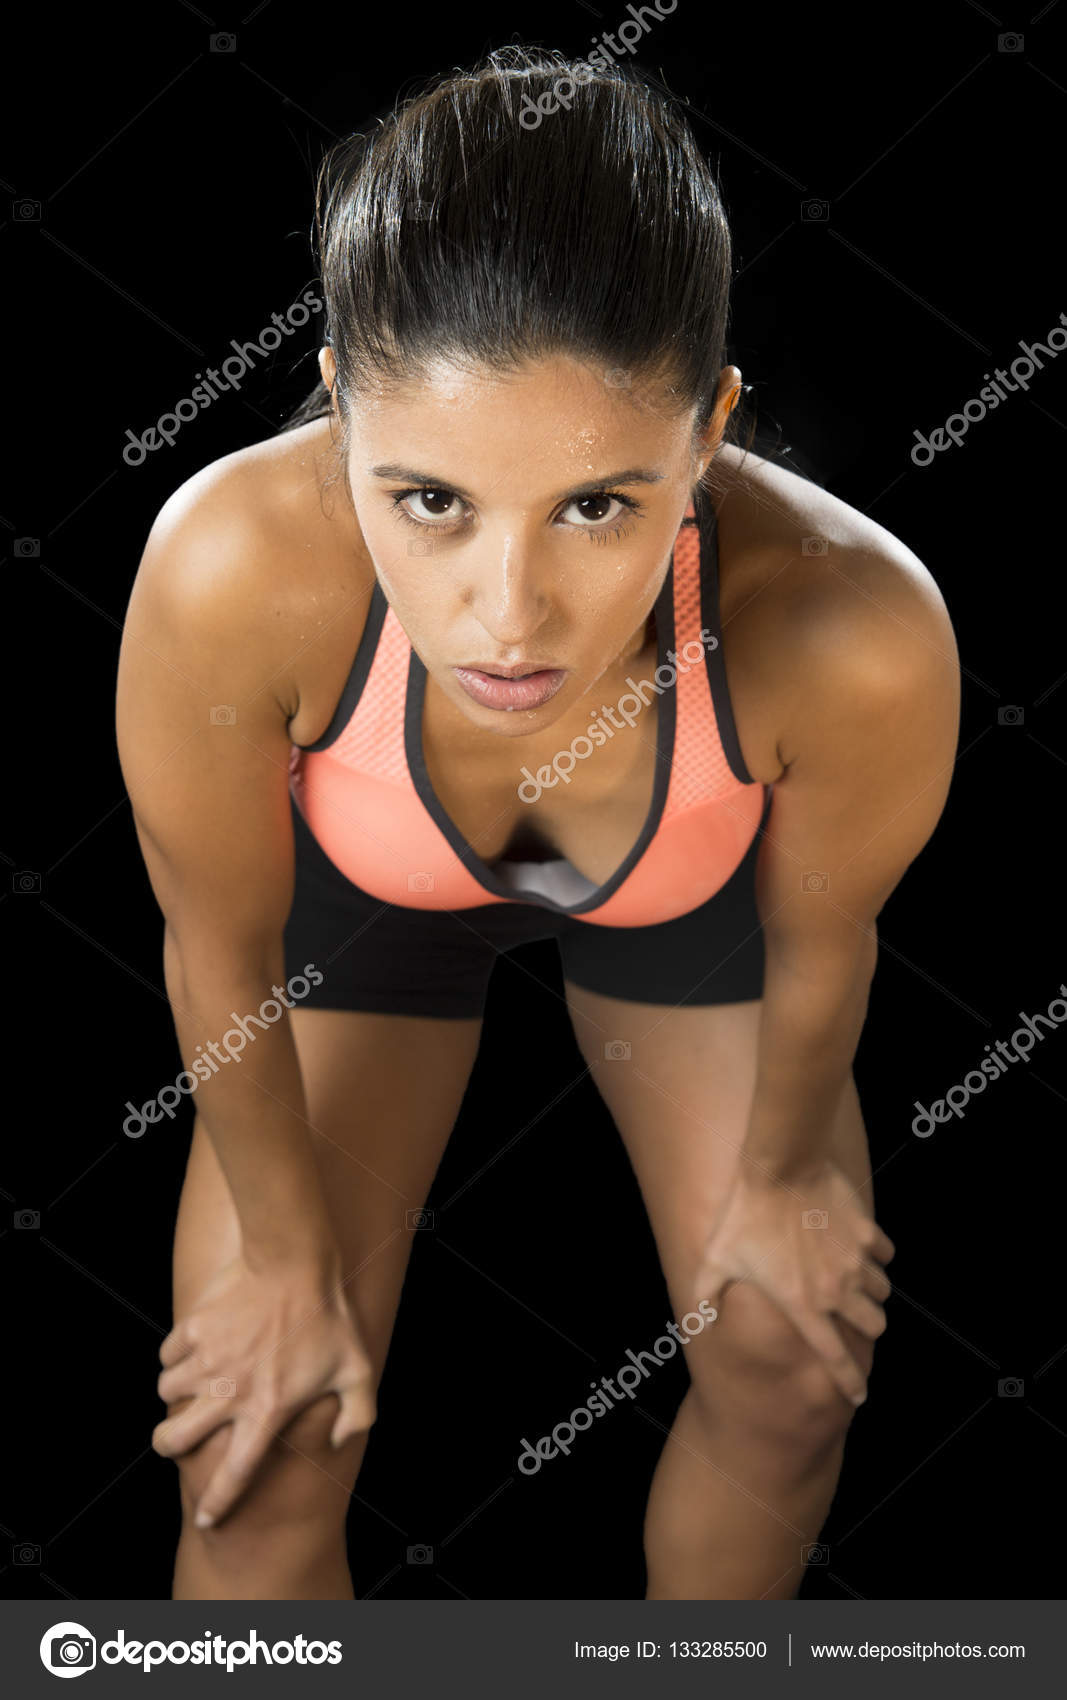 09be7b7601034 Young attractive sexy latin sport woman posing in fierce and badass face  expression with fit slim body isolated on black background in healthy  lifestyle and ...